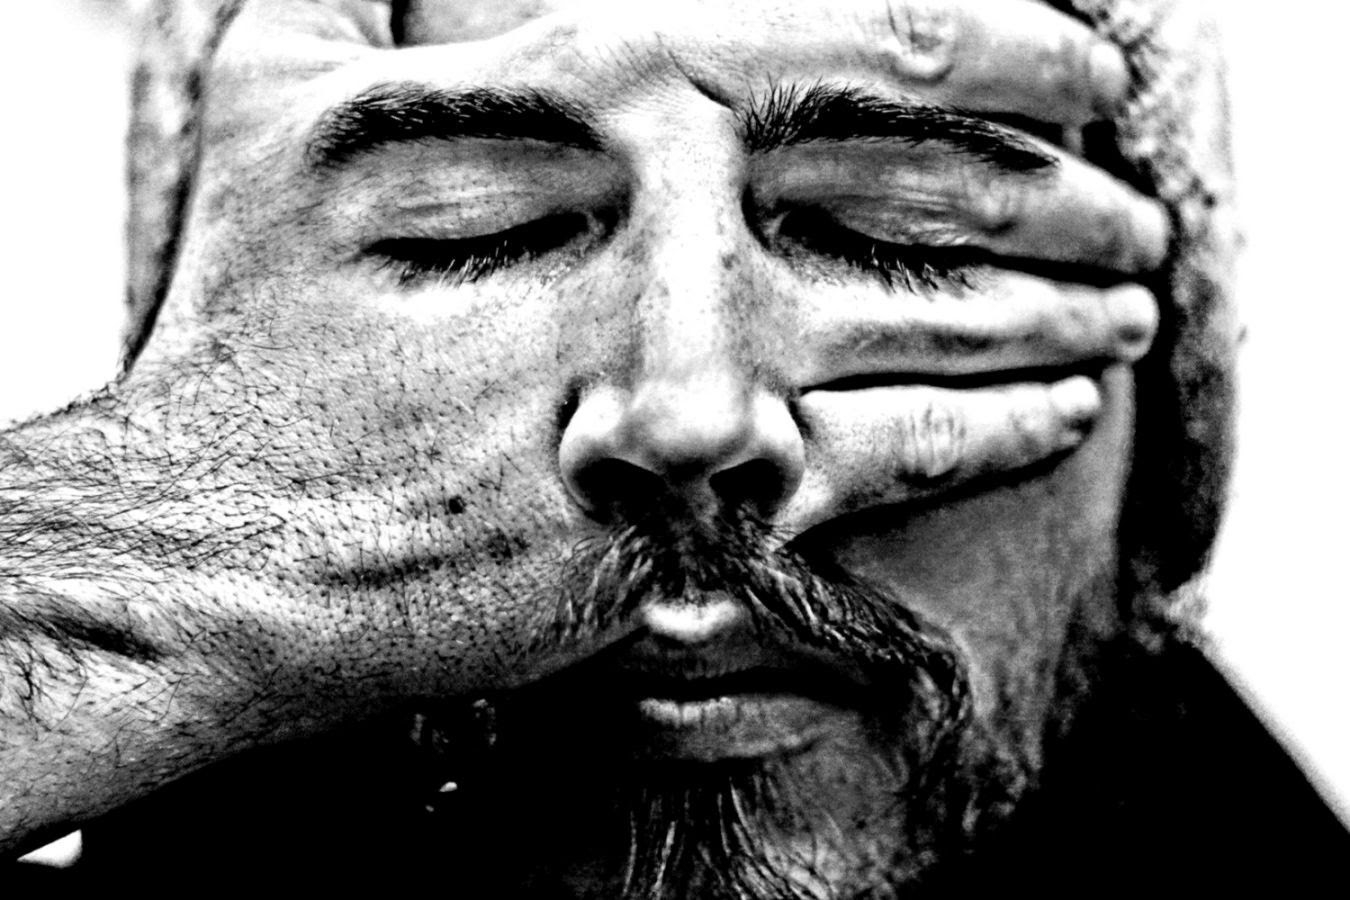 Abstract Faces Black And White | Img Need | Art Pieces | Pinterest inside Black And White Abstract Photography Of People 28042